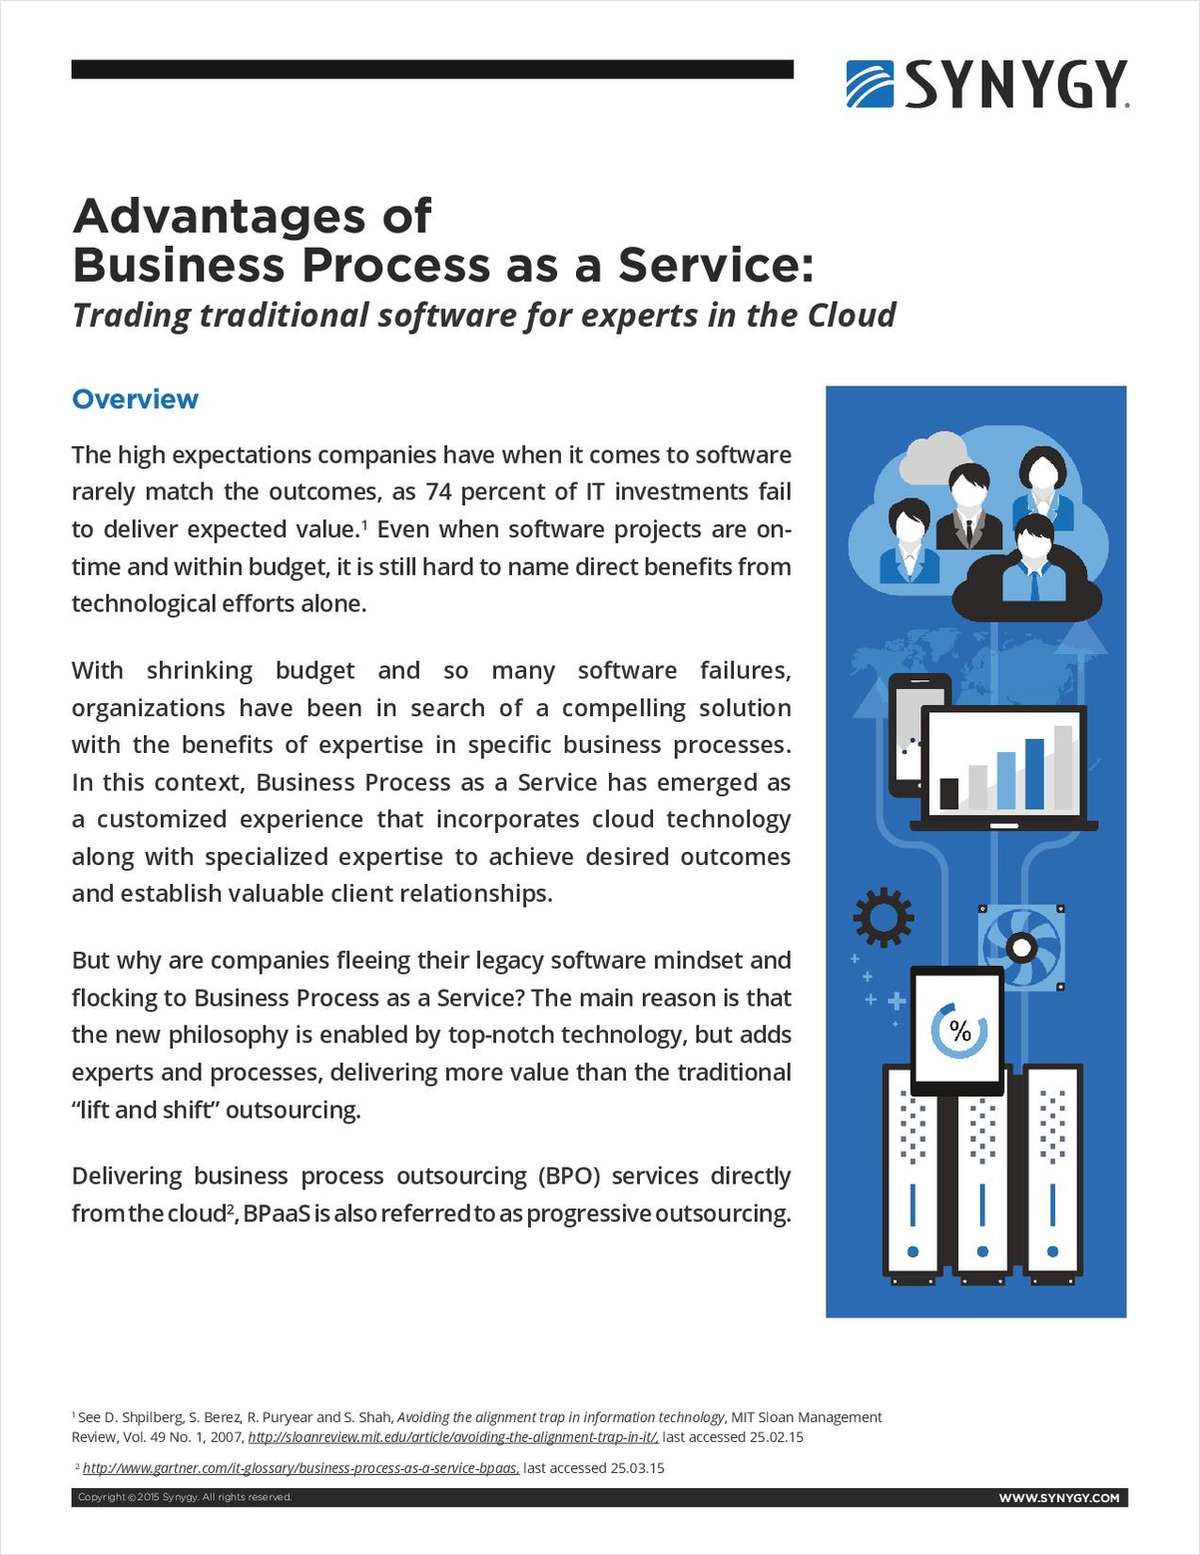 Advantages of Business Process as a Service